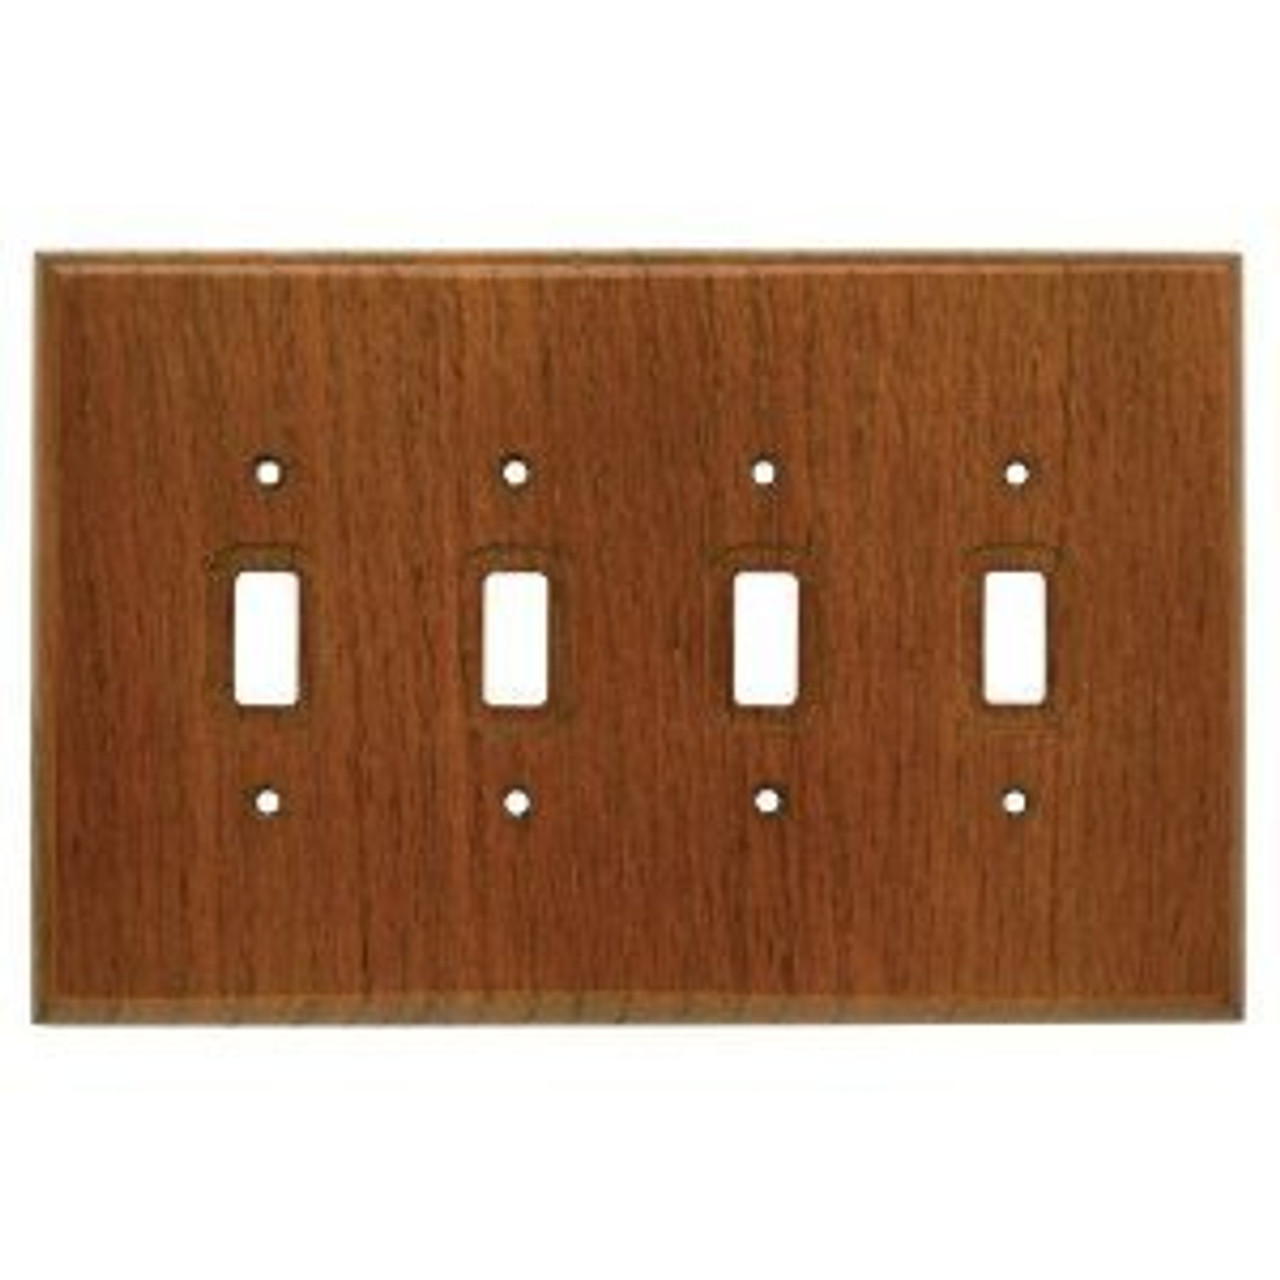 126429 Dark Oak Wood Quad Switch Cover Plate